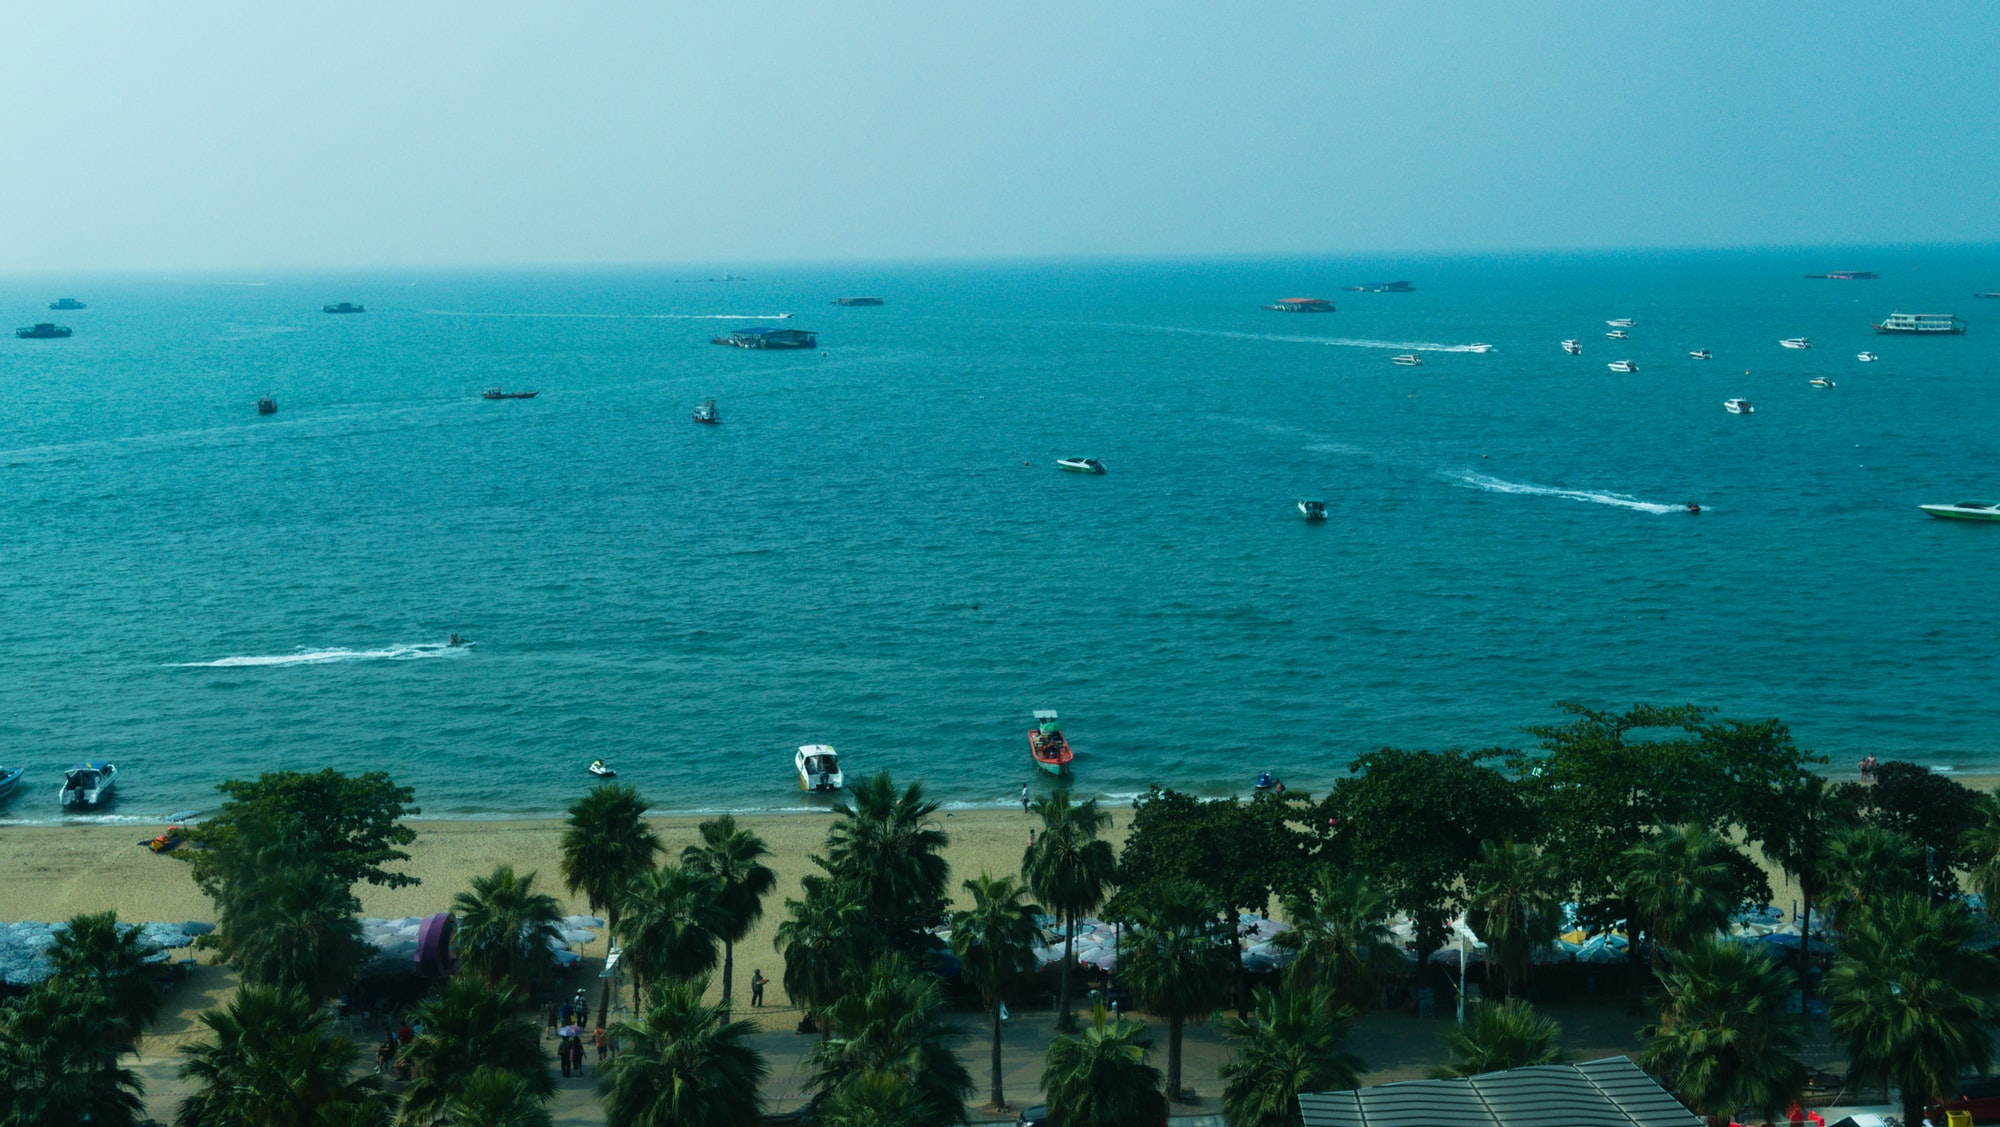 Pattaya beach #pattaya #beach